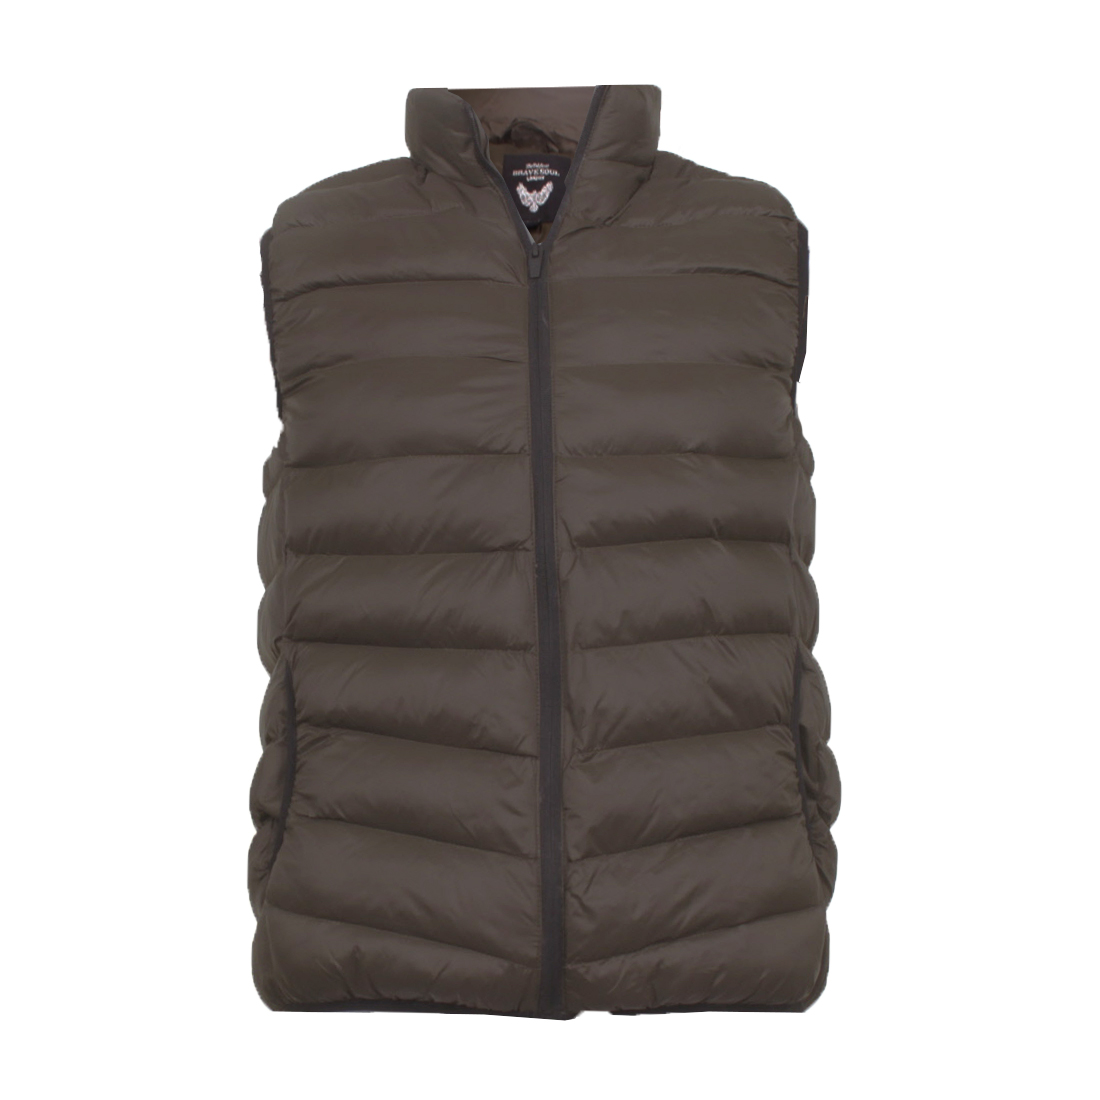 Brave-Soul-Men-039-s-Gillet-Body-Warmer-with-Or-Without-Hood-Puffer